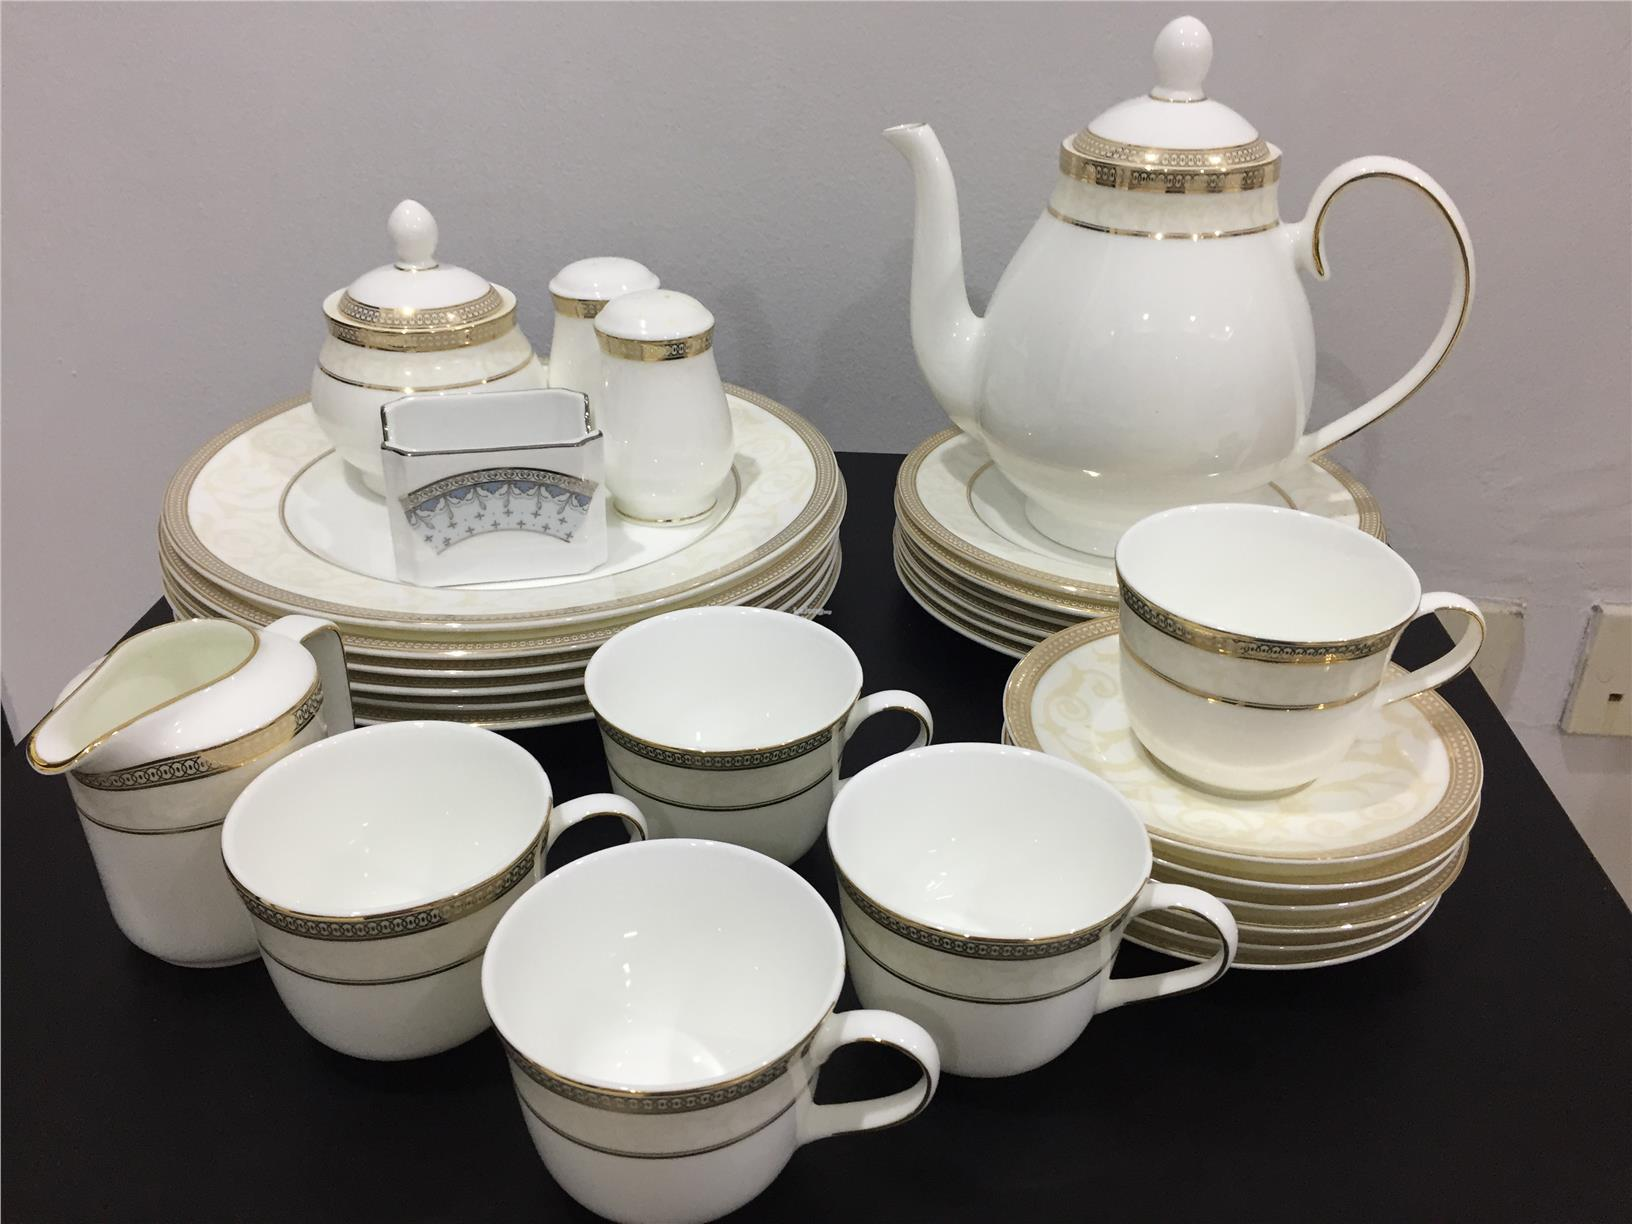 Dining Set - Shinepukur Bone China